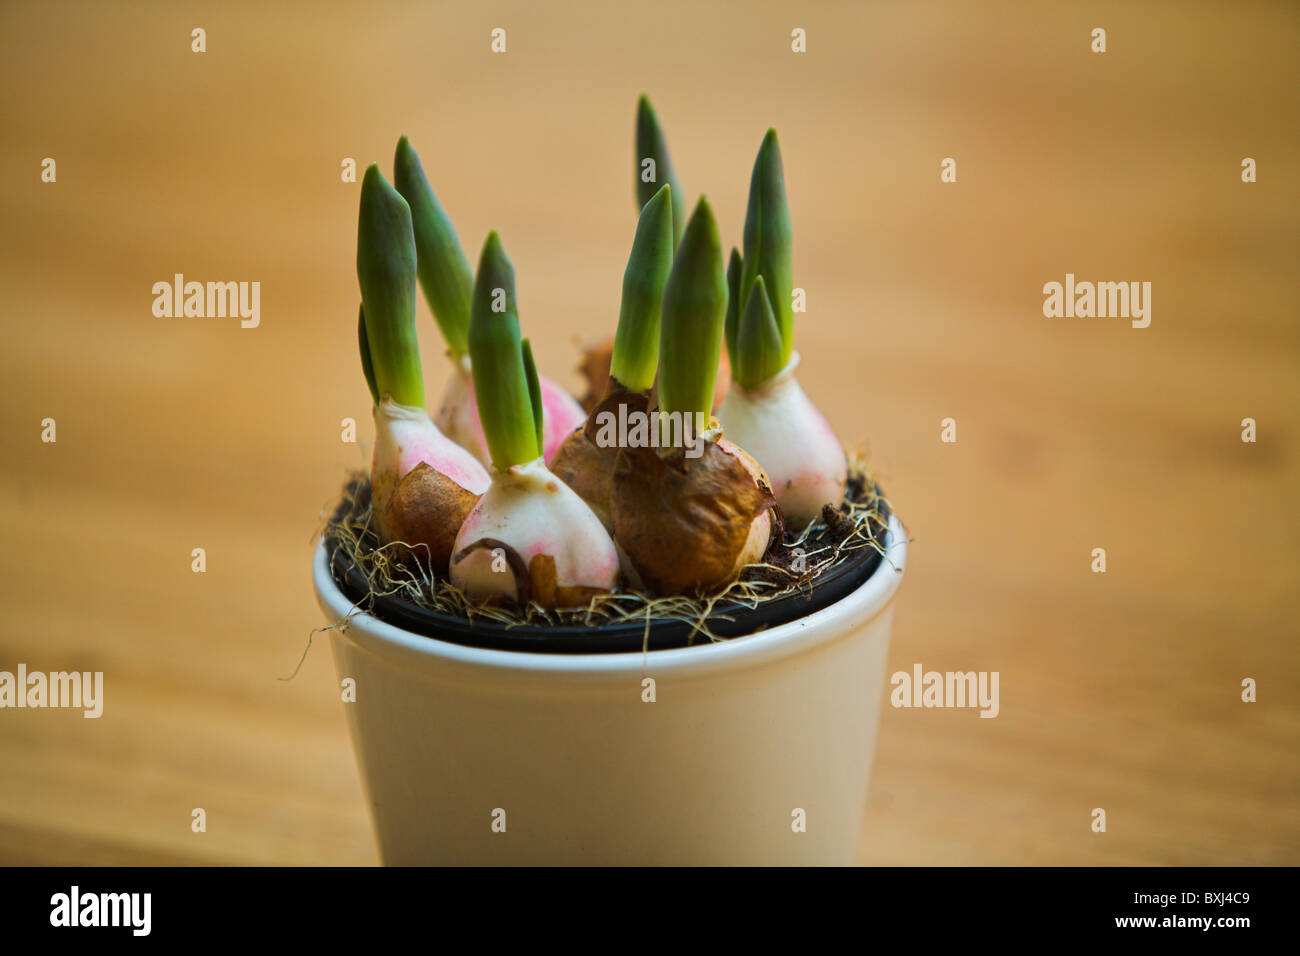 Stock Photo of Tulip Stock Photo